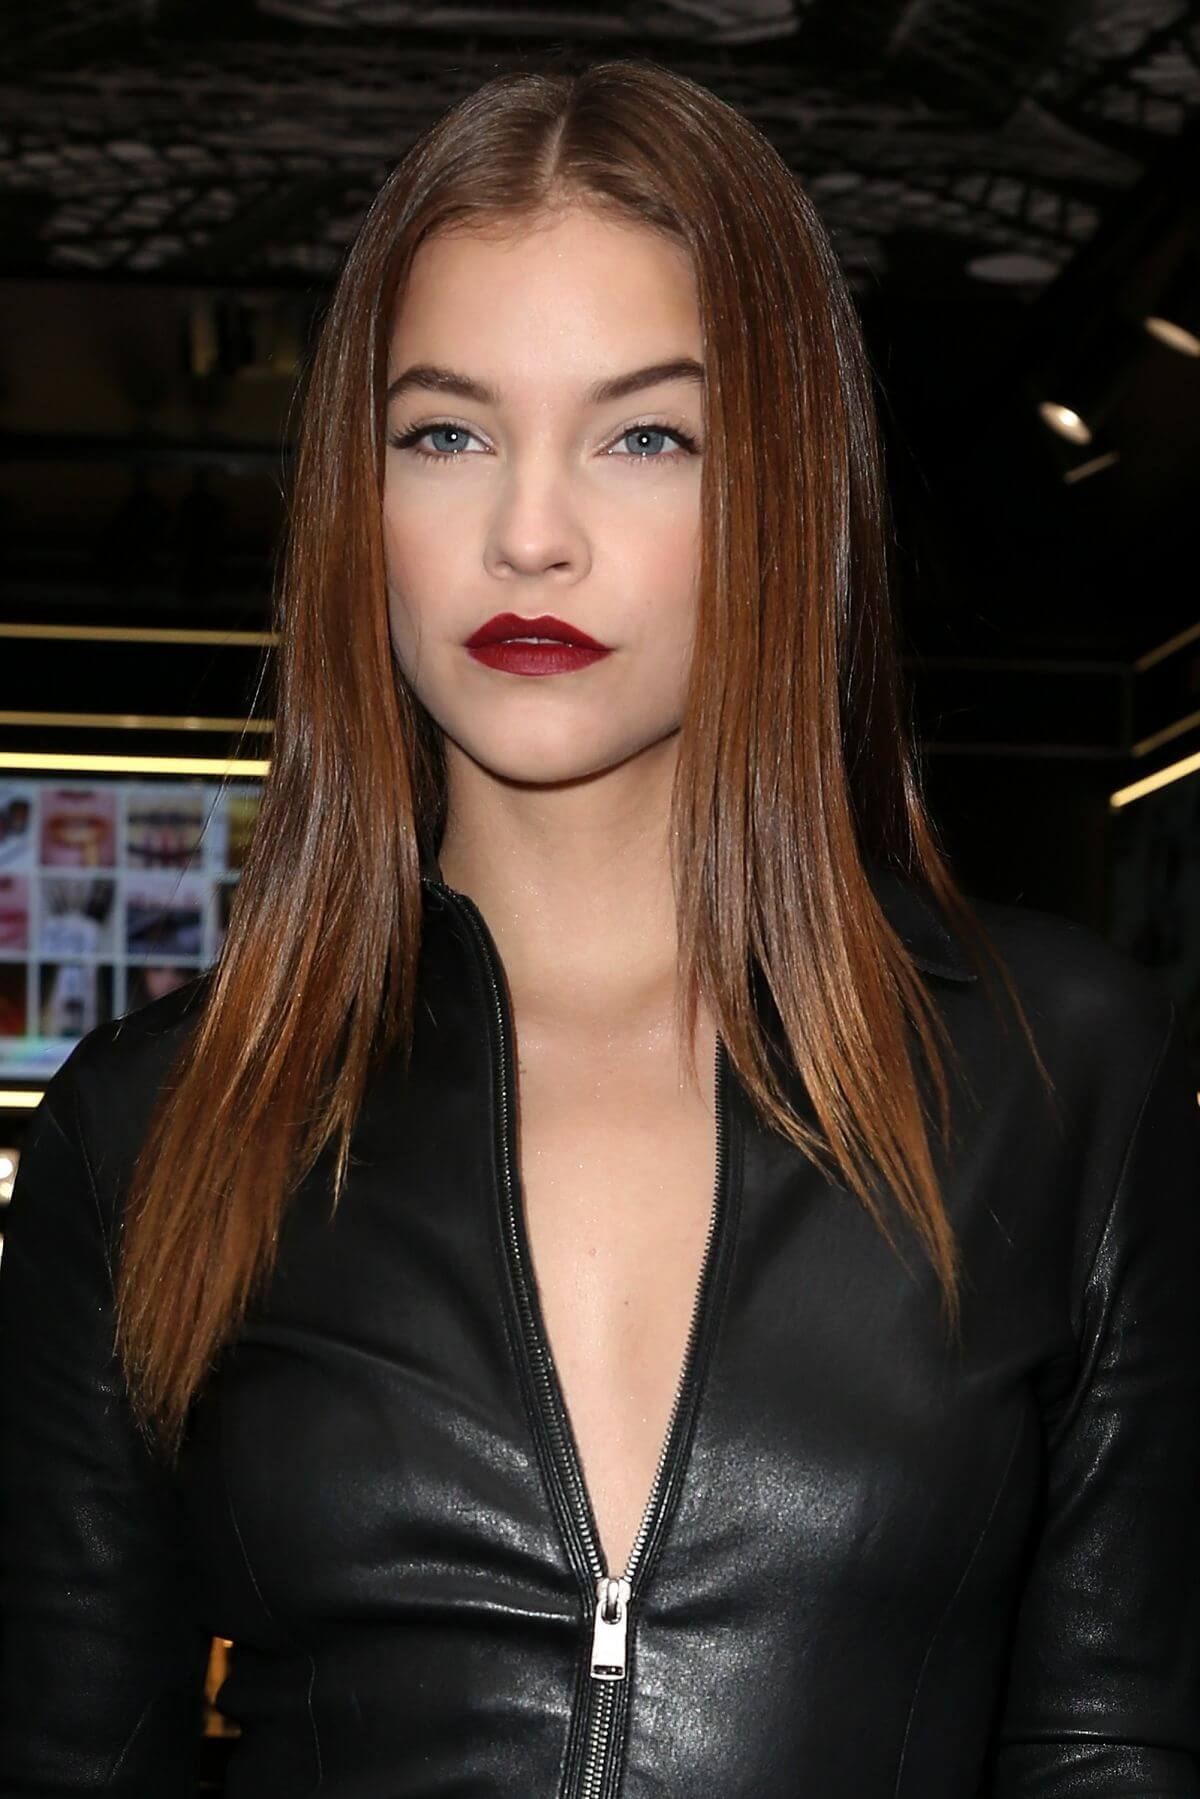 Barbara Palvin Stills Leather at New L'Oreal Store Opening in Paris